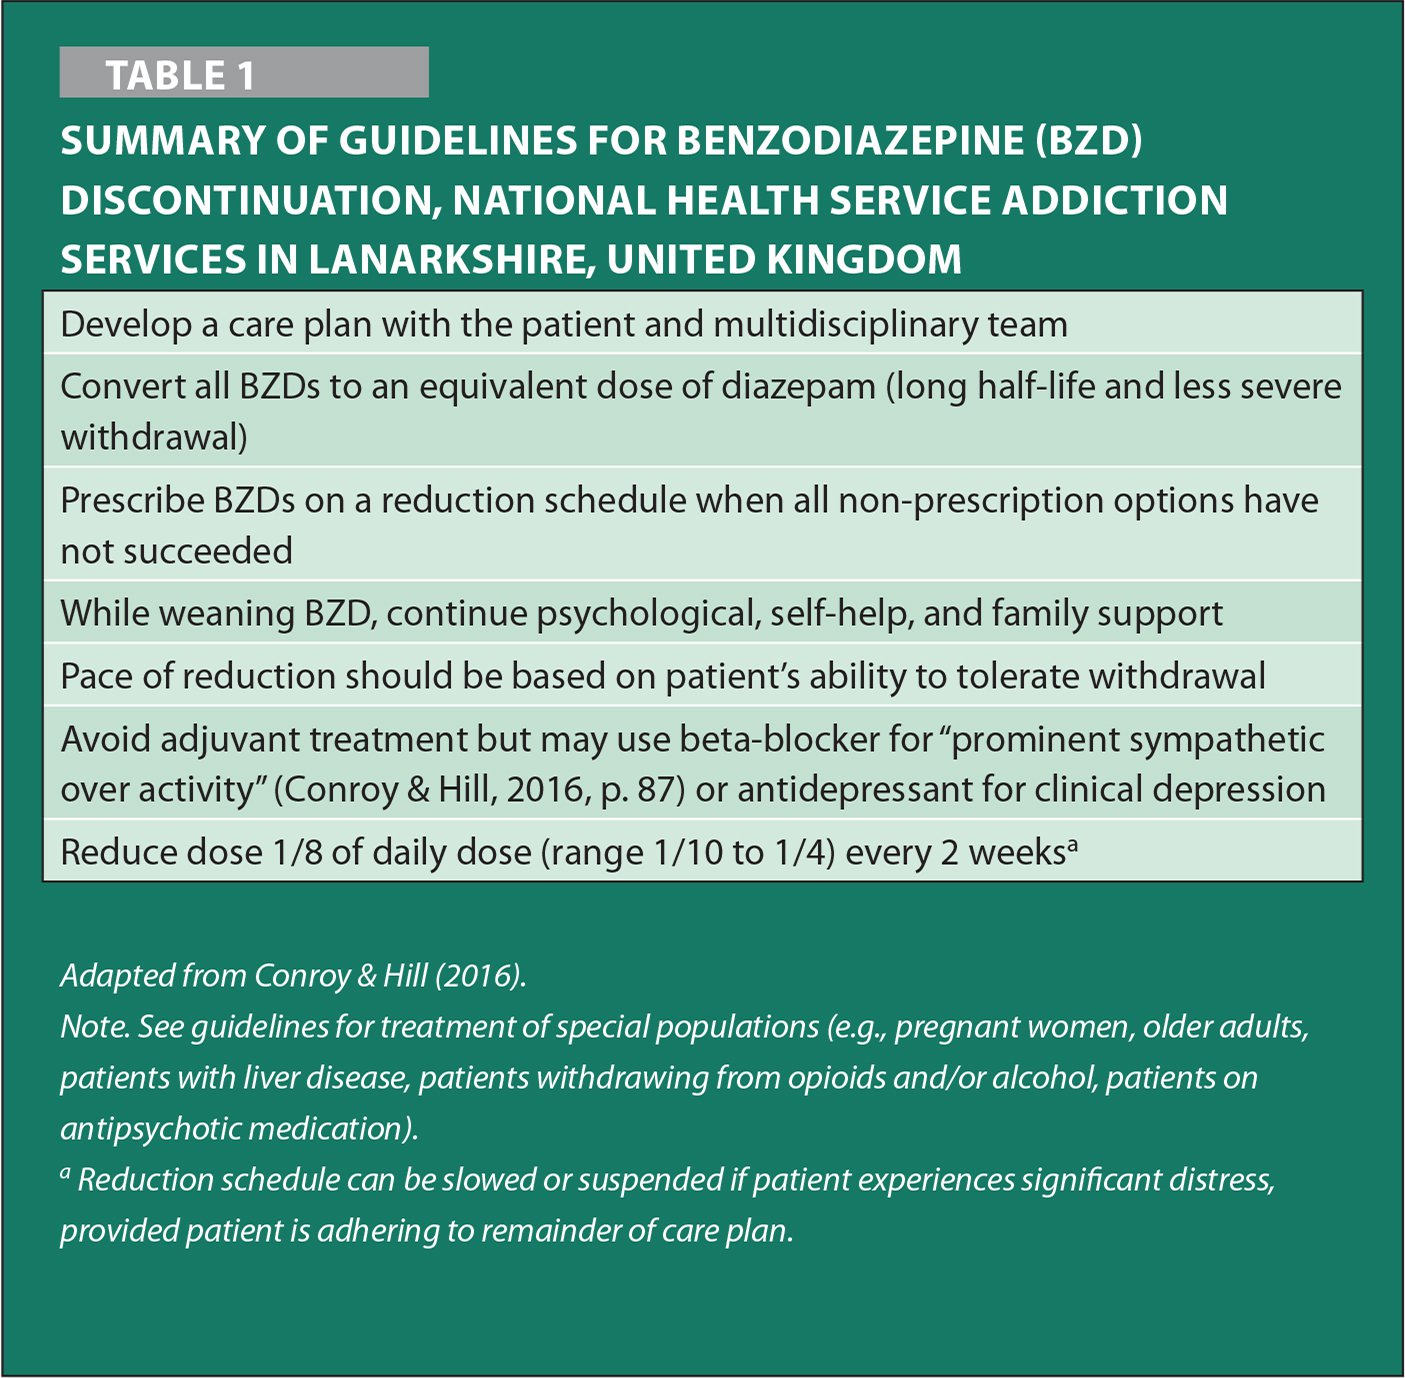 Summary of Guidelines for Benzodiazepine (BZD) Discontinuation, National Health Service Addiction Services in Lanarkshire, United Kingdom